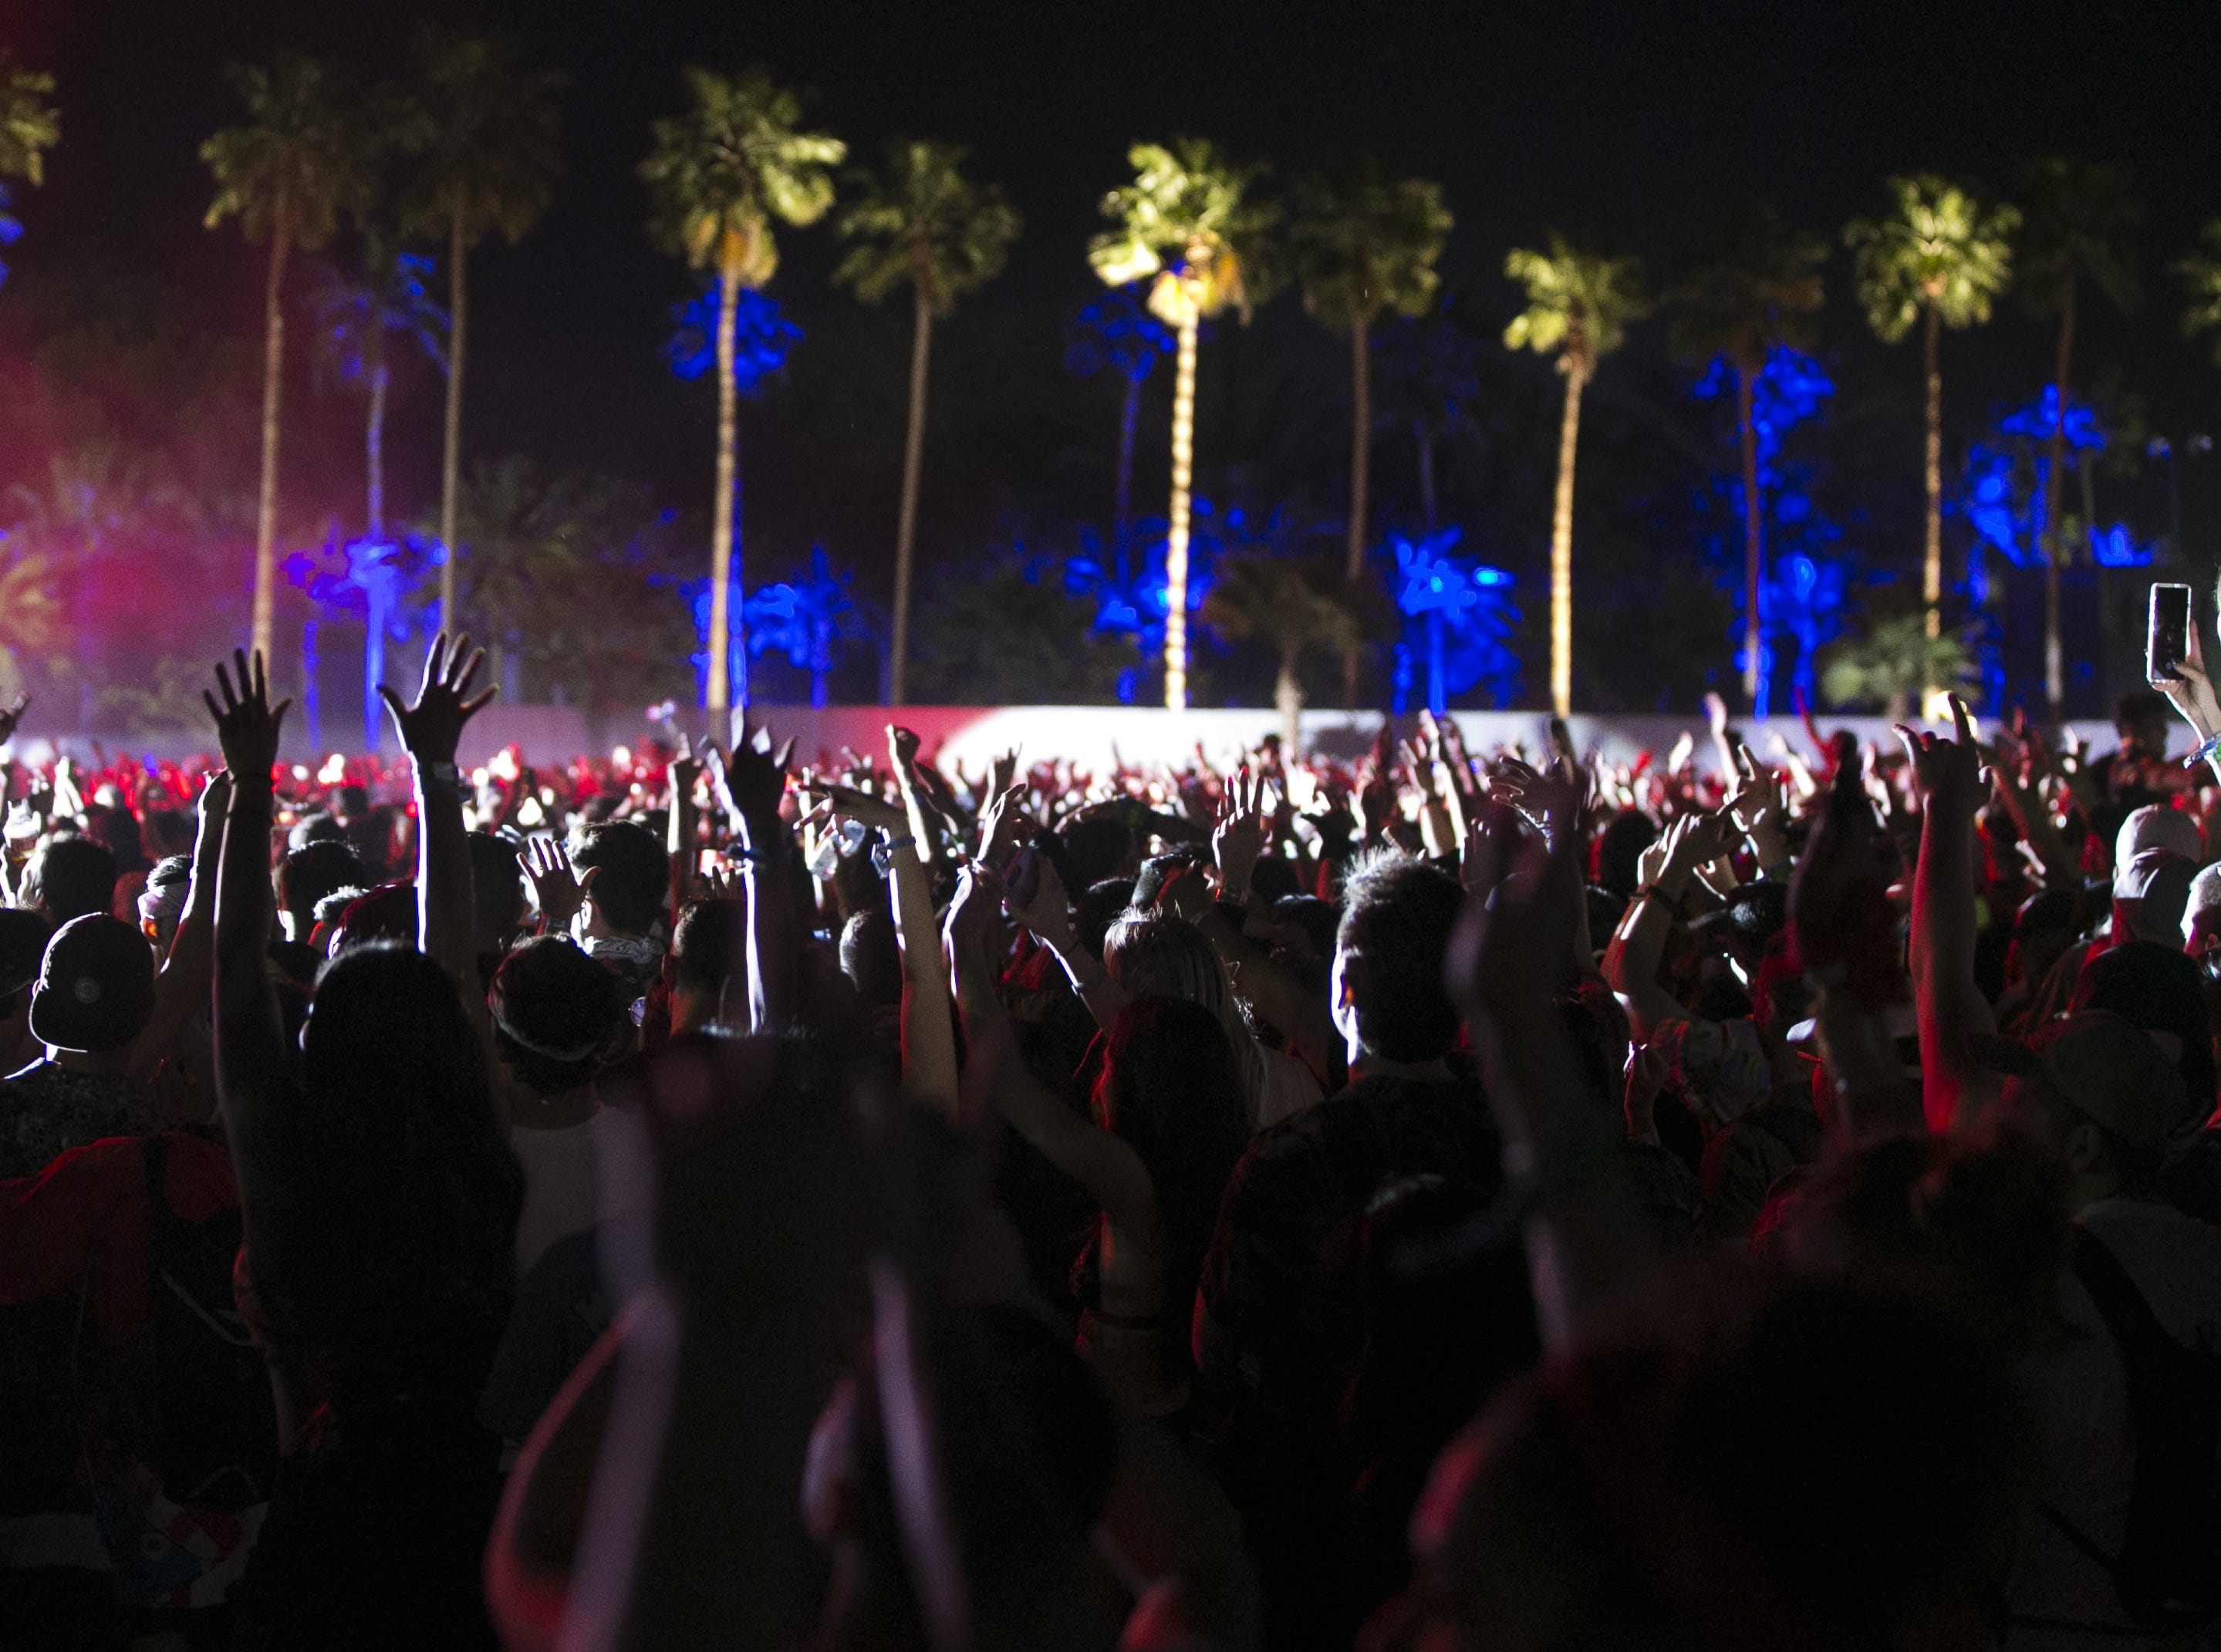 Festival-goers watch DJ Snake perform at the Coachella Valley Music and Arts Festival in Indio, Calif. on April 12, 2019.